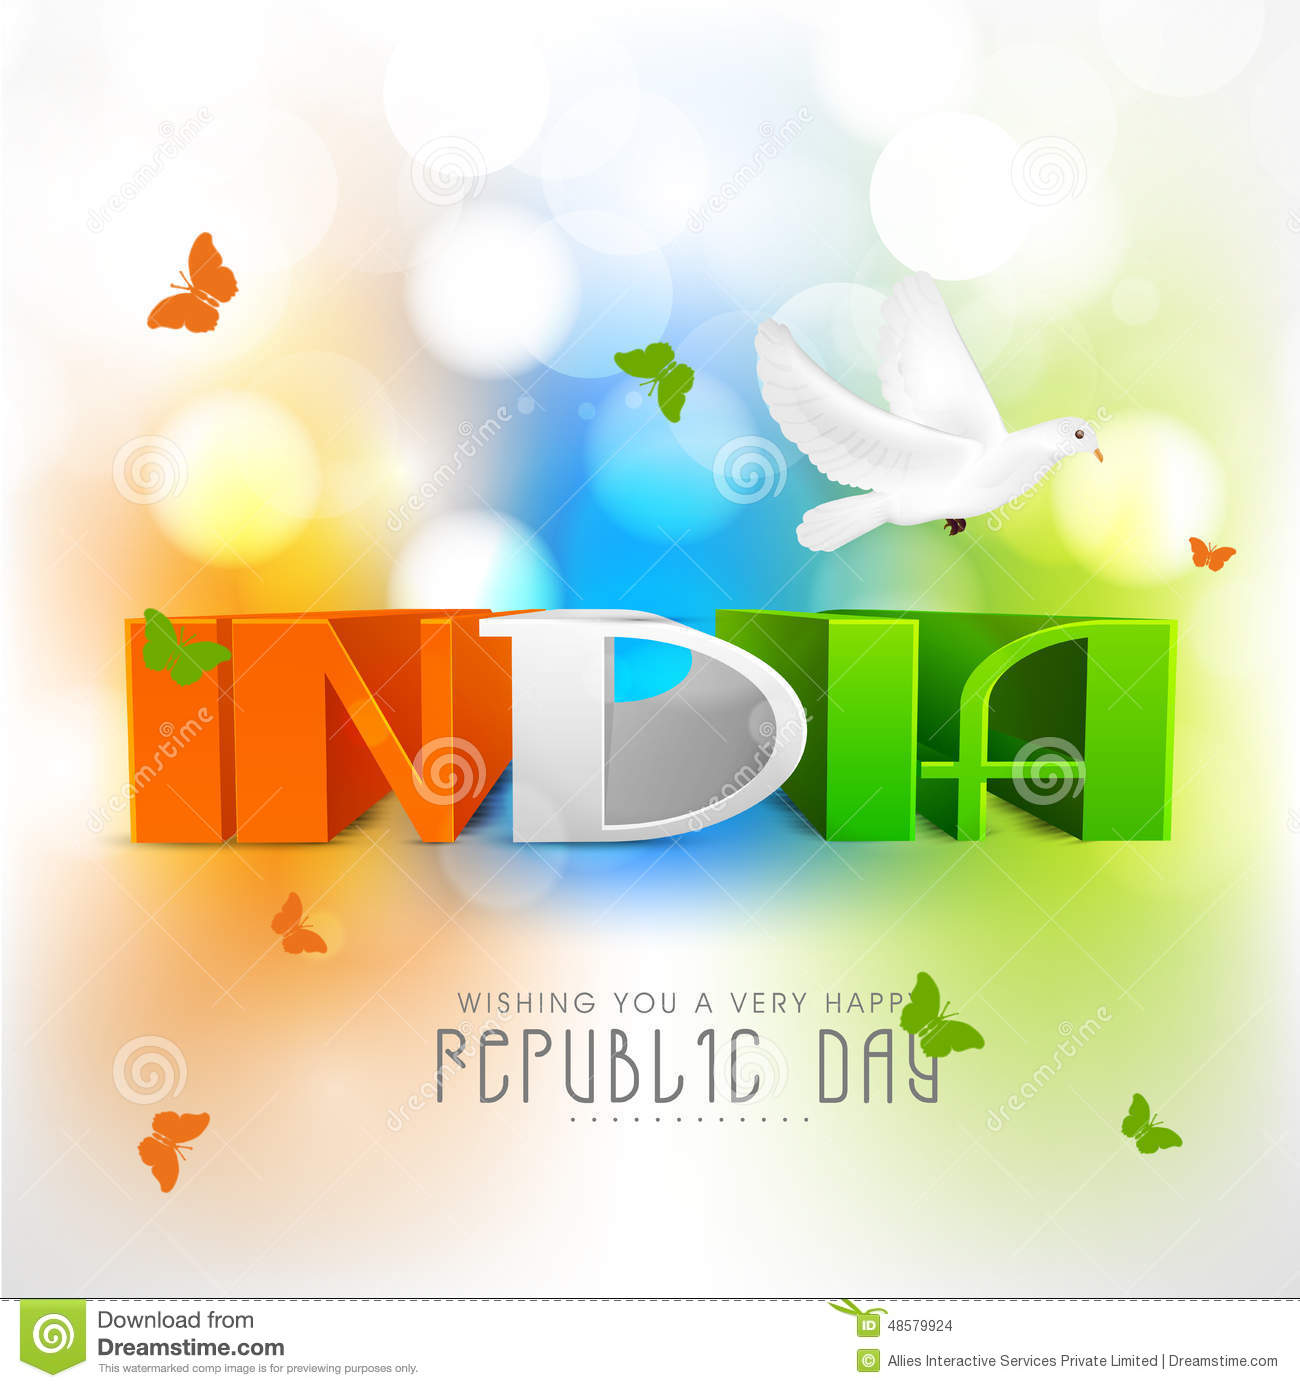 Greeting card design for indian republic day celebration stock greeting card design for indian republic day celebration m4hsunfo